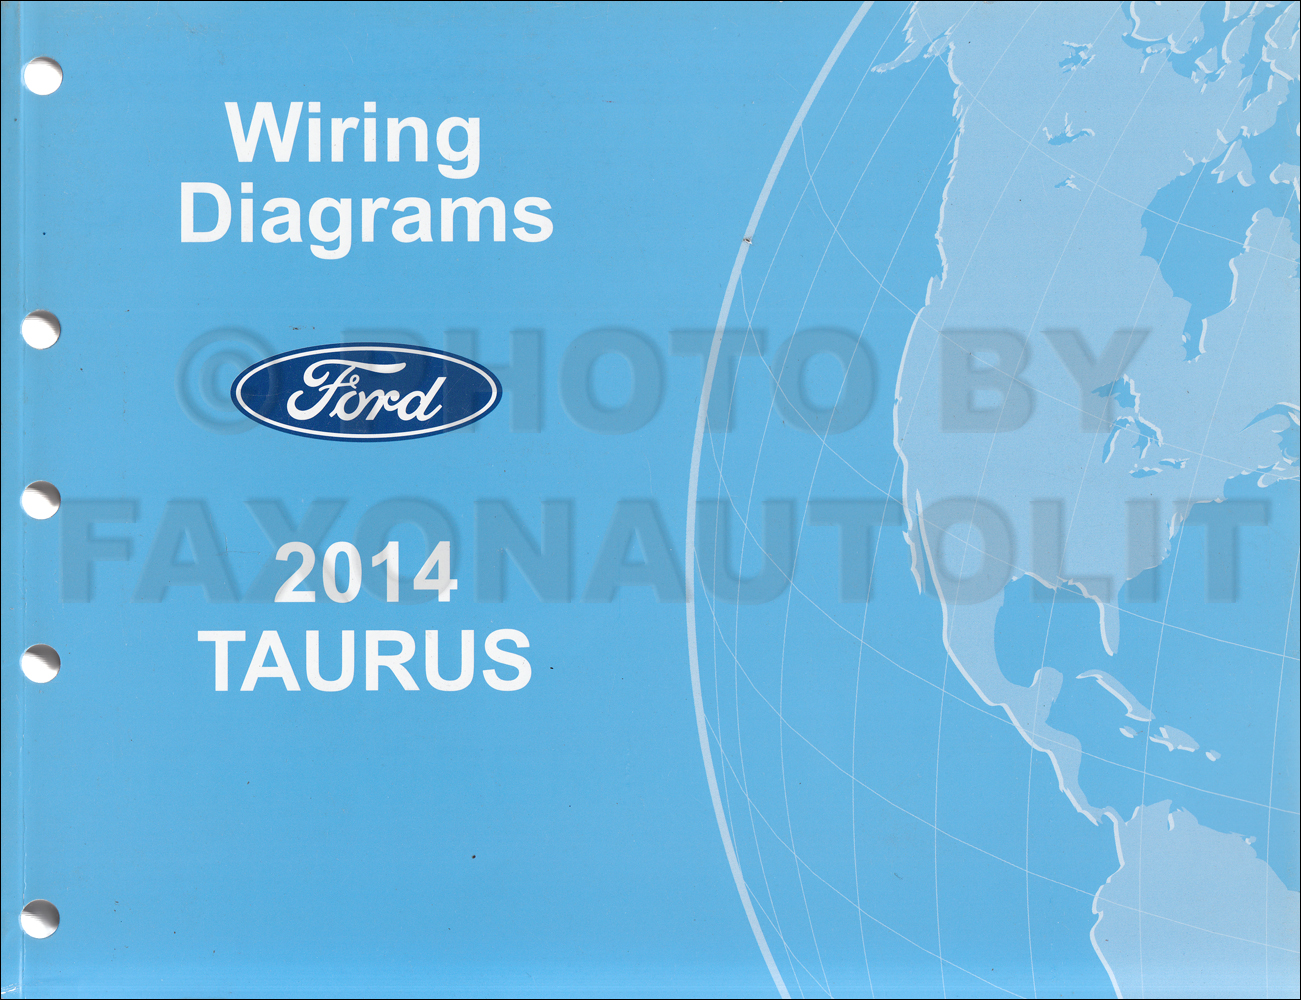 2014 ford taurus wiring diagram manual original 2014 Nissan Versa Wiring Diagram 2014fordtaurusowd jpg